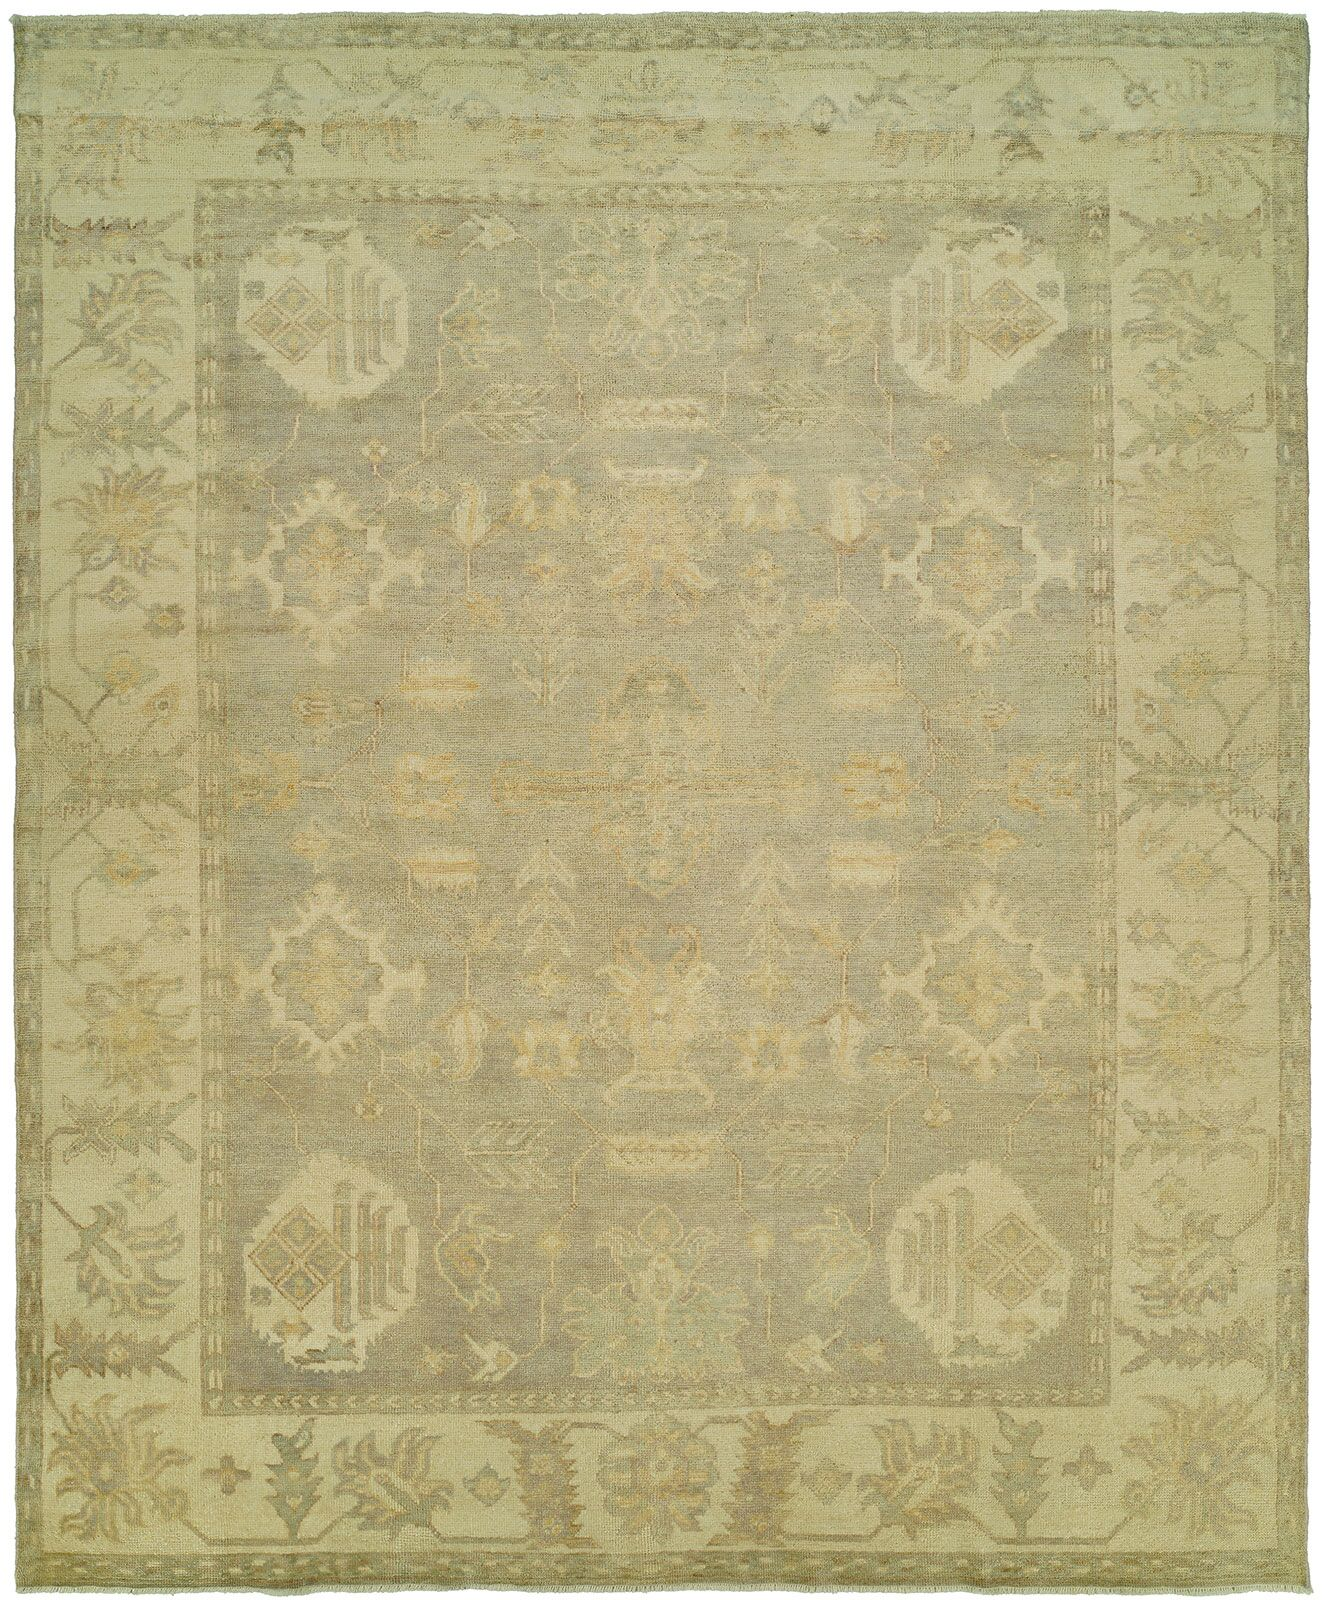 Herrick Hand Knotted Wool Gray/Ivory Area Rug Rug Size: Rectangle 9' x 12'